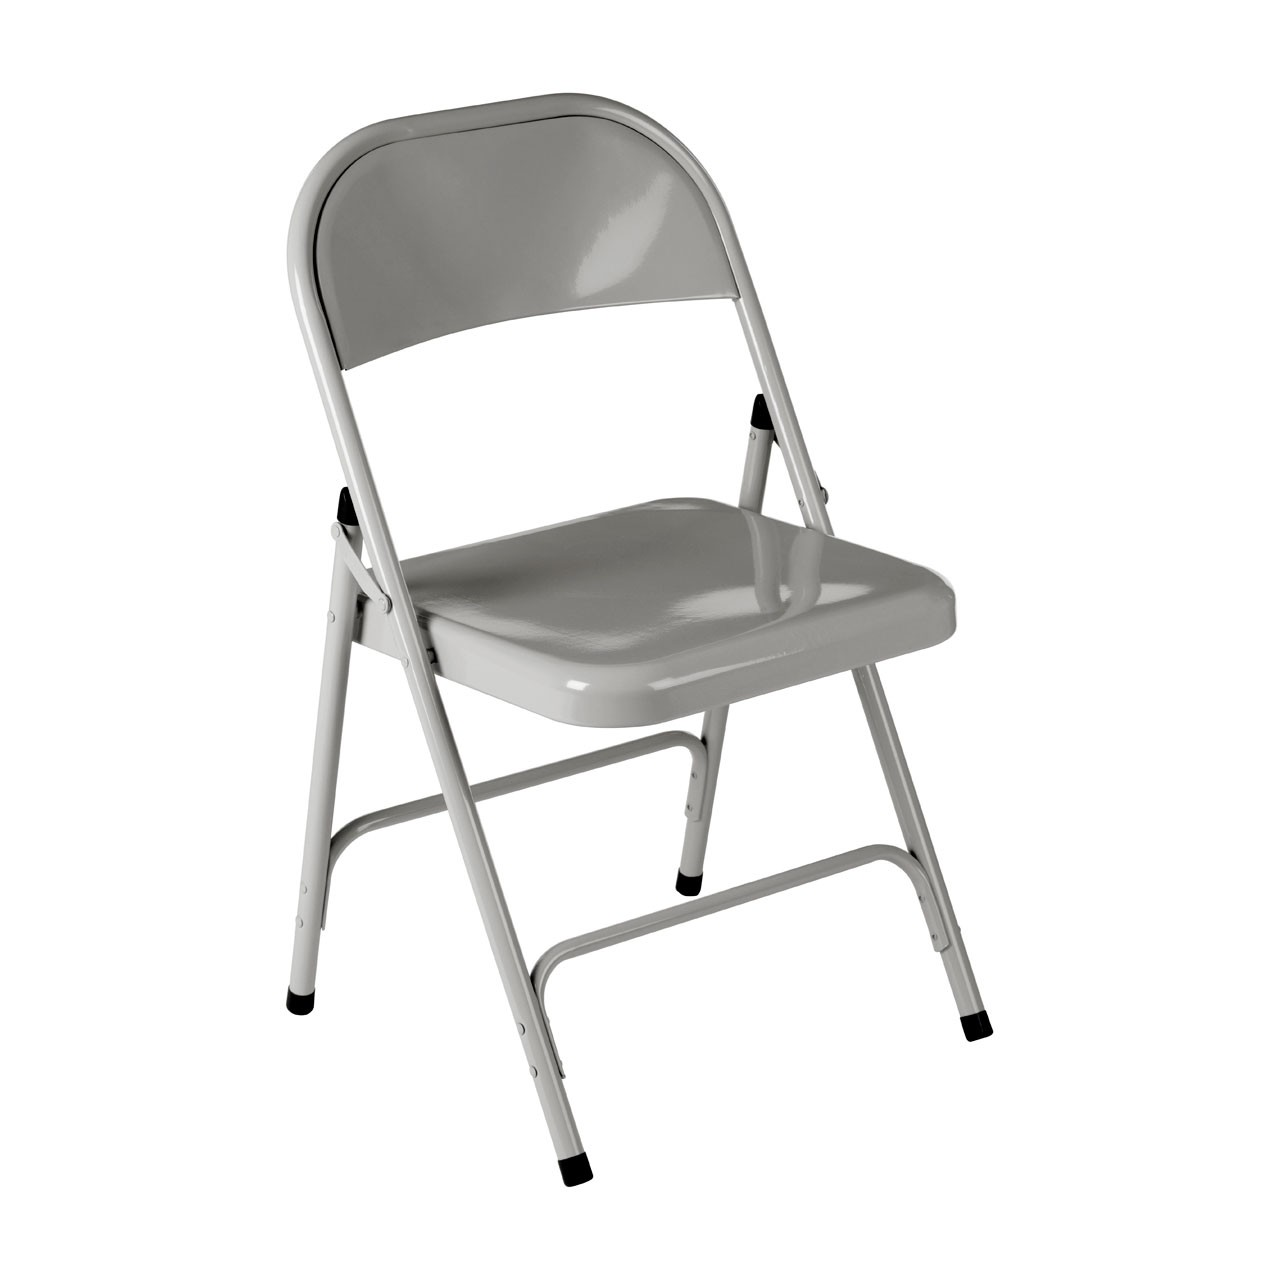 2 x Folding Chair, Grey, Metal